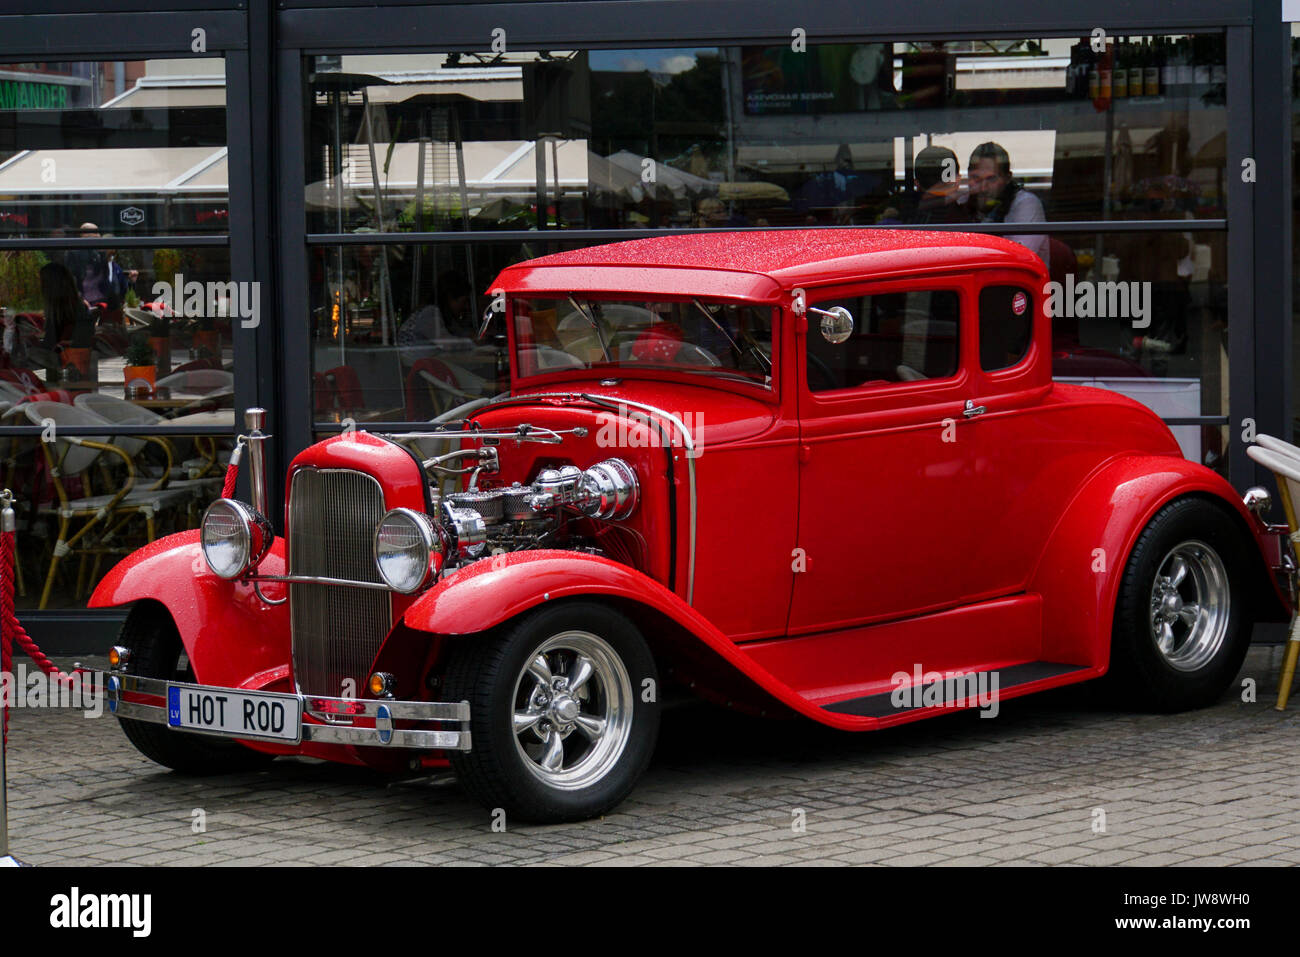 Old Ford Coupe Hot Rod Classic Car on display in Riga, Latvia Stock ...